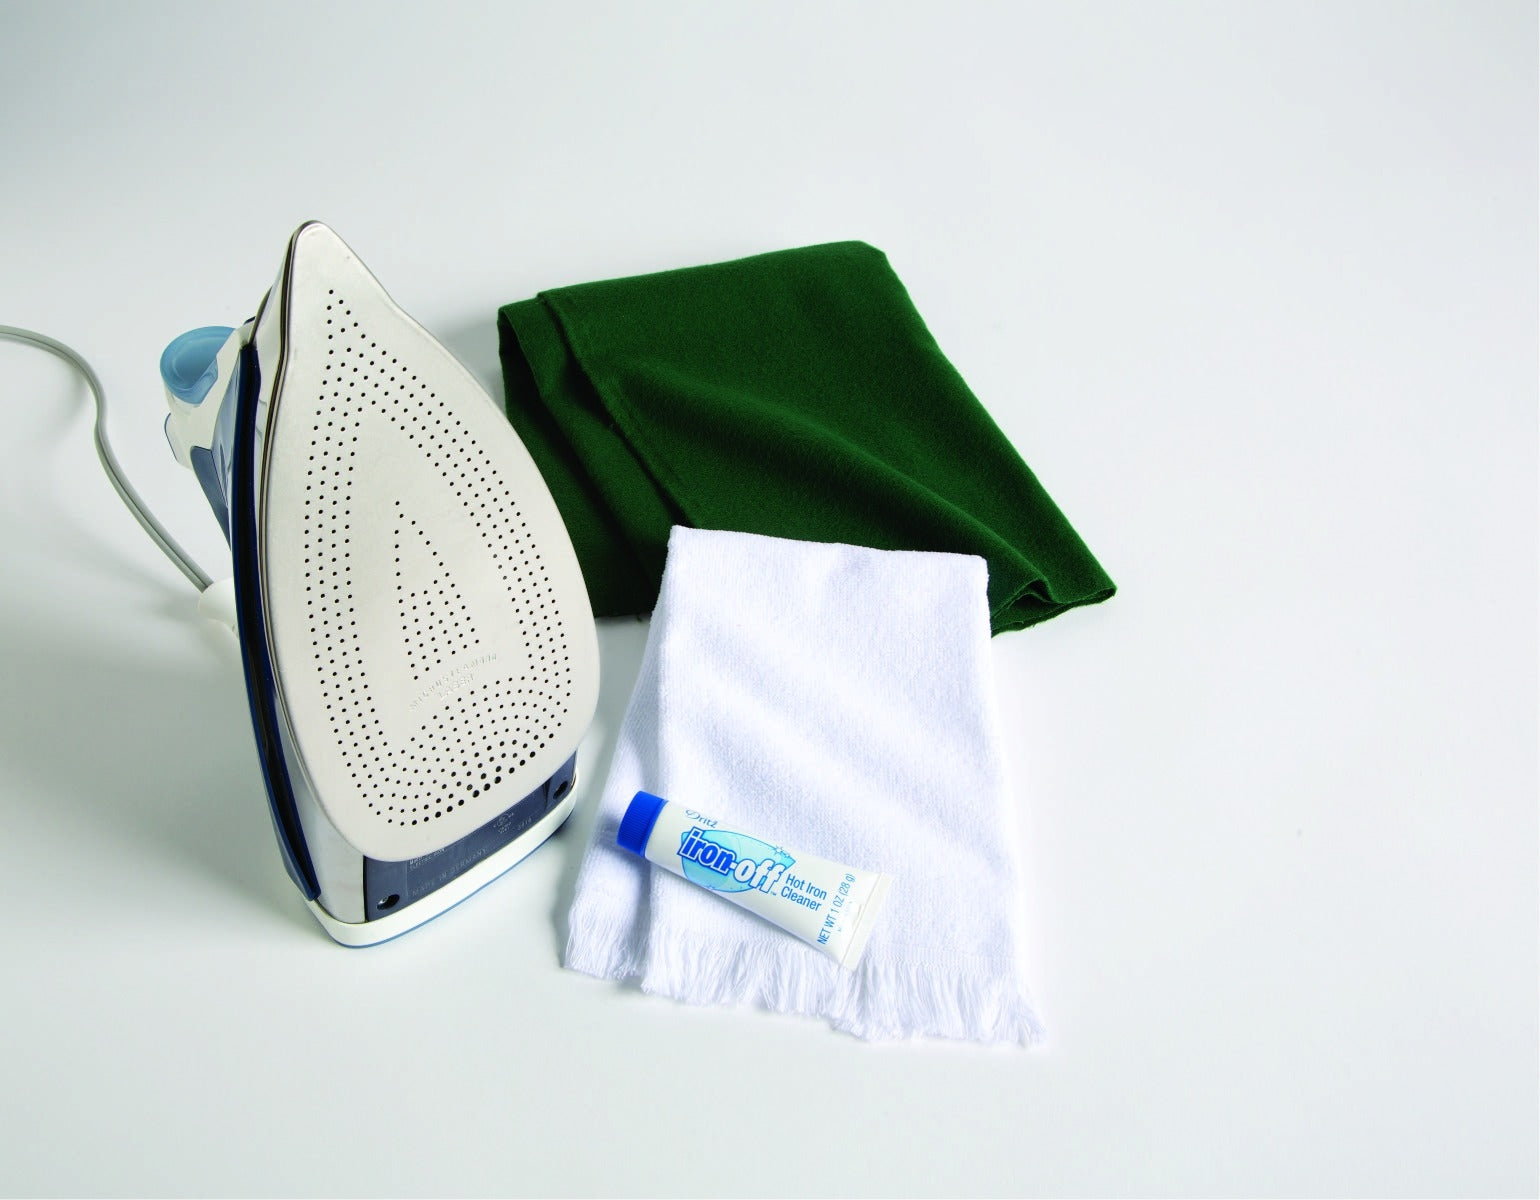 Easy Iron Cleaning Kit